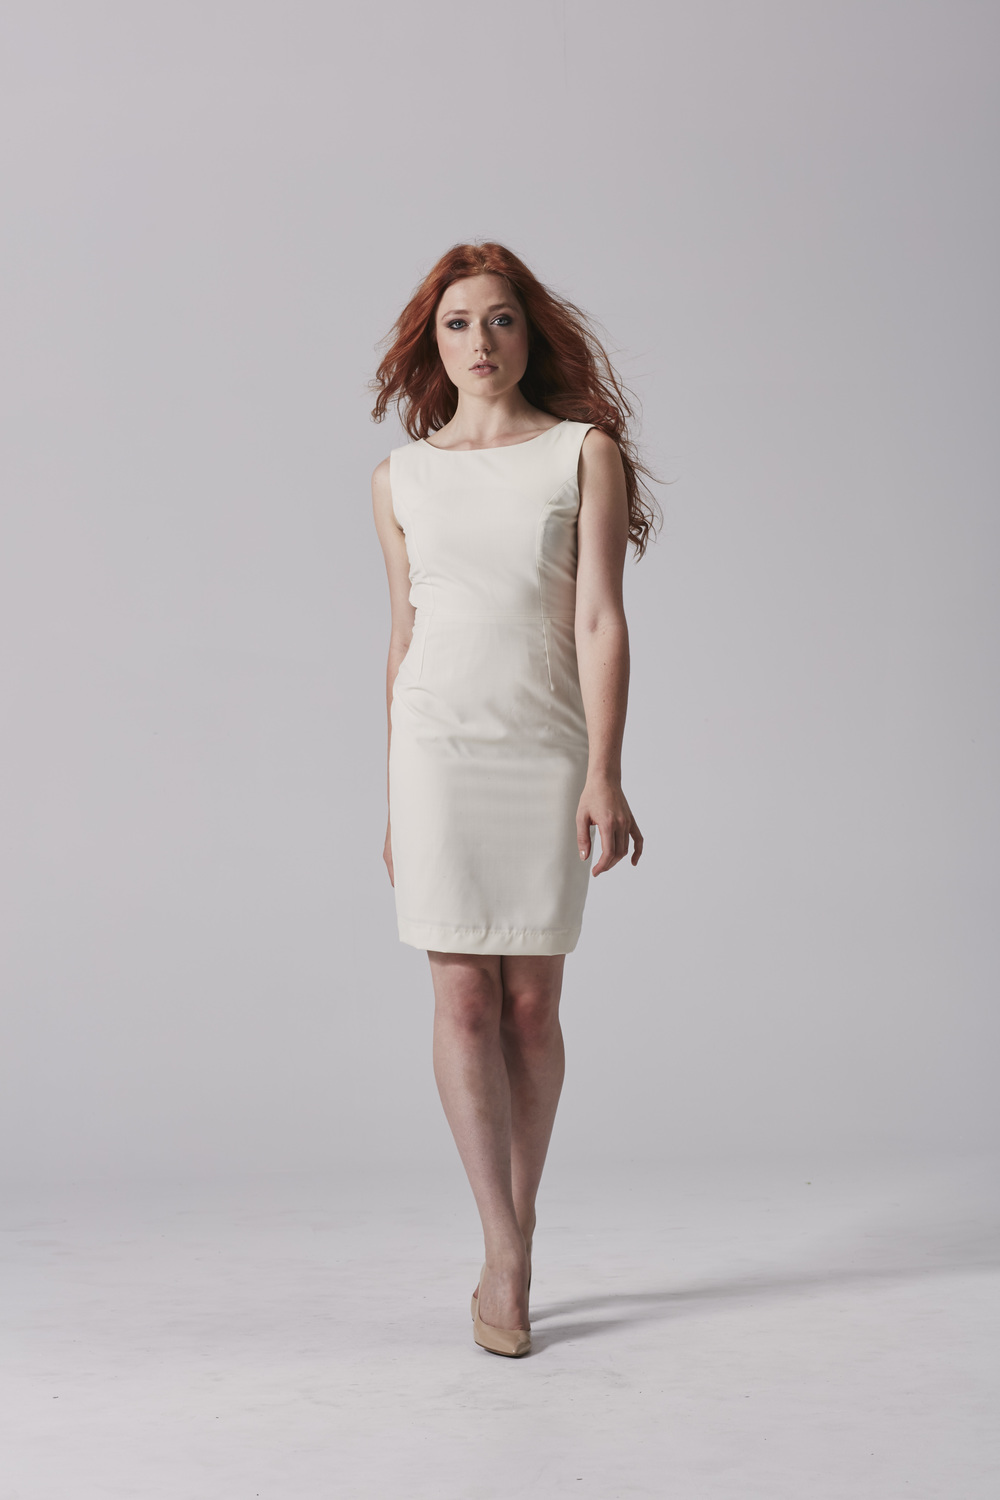 Womens white business dress.jpg